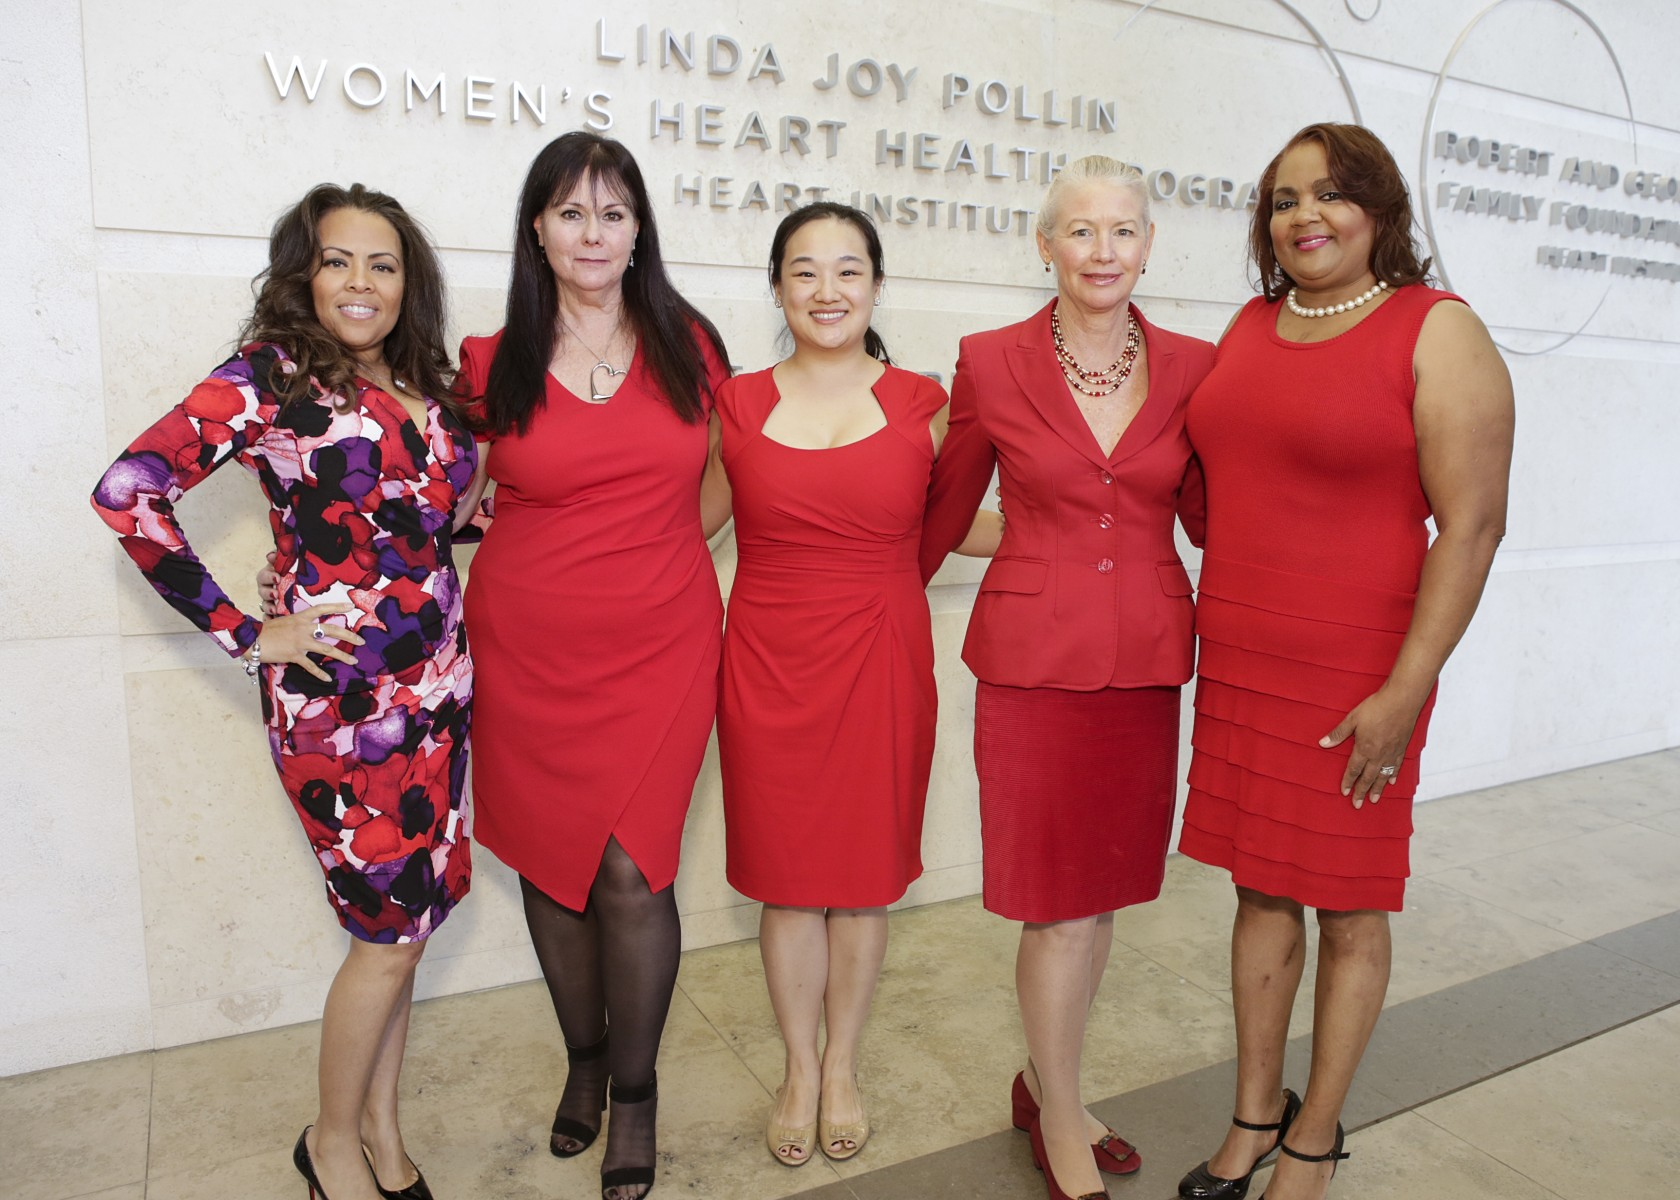 Barbara Fleeman, second from left, and Noel Bairey Merz, MD, second from right, attend an event at the Barbra Streisand Women's Heart Center in the Smidt Heart Institute. Photo by Cedars-Sinai.